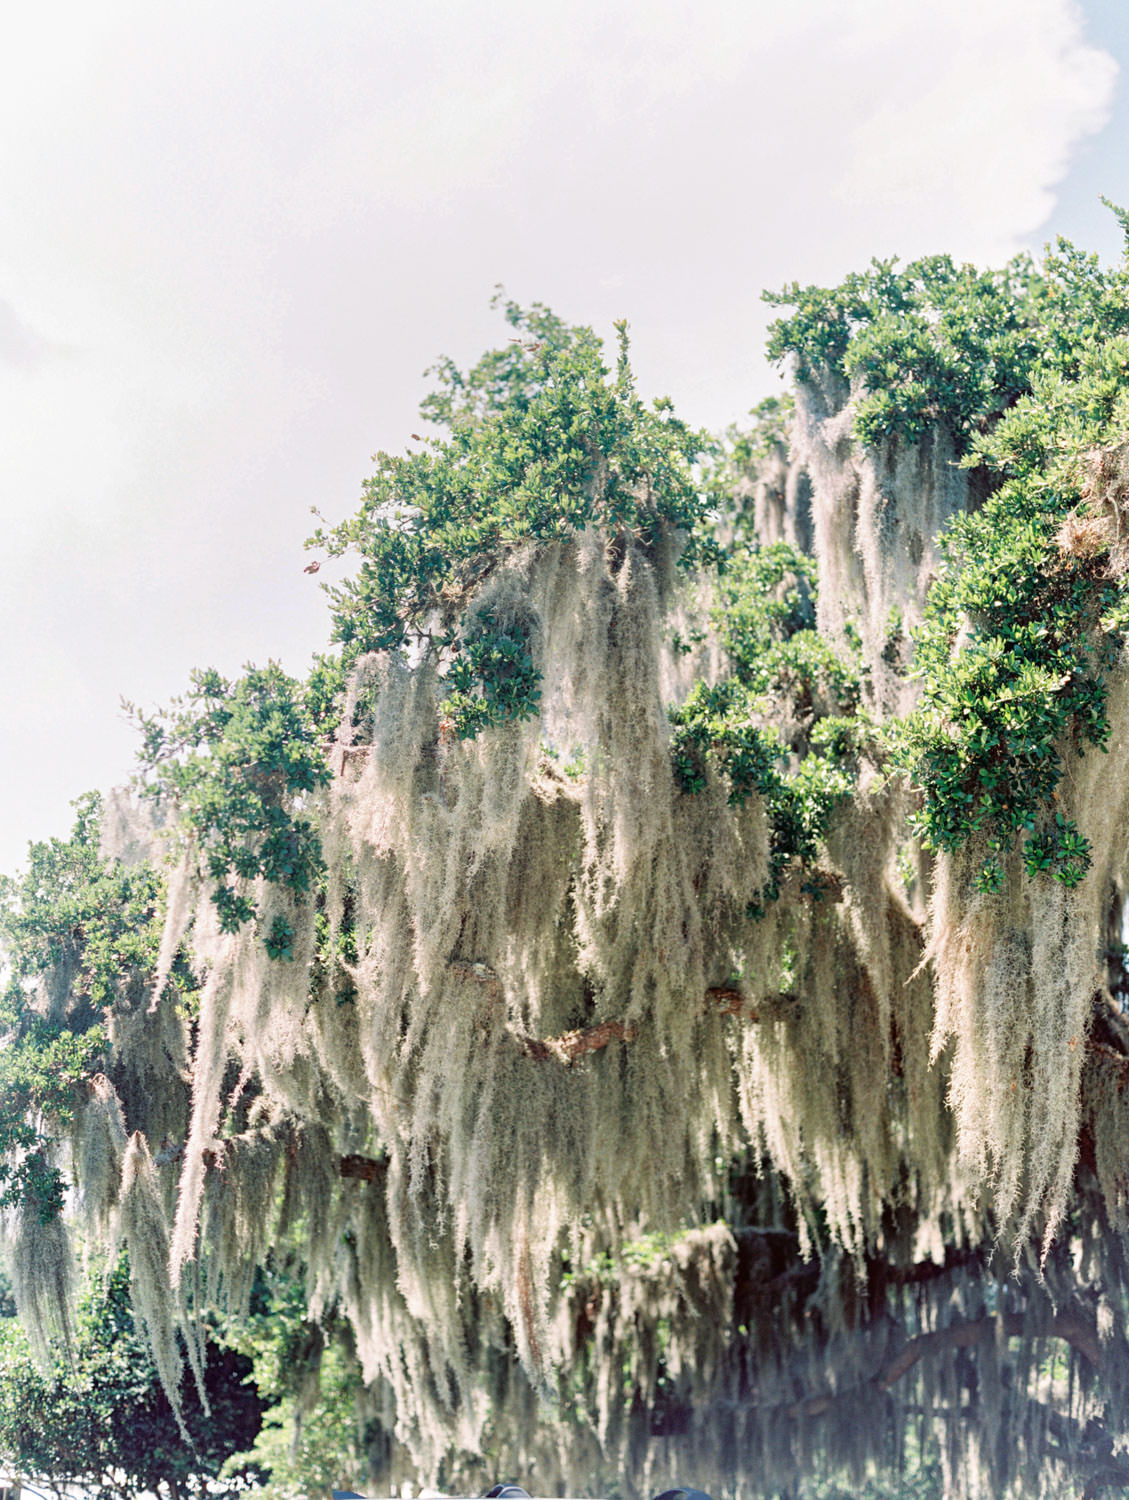 Spanish moss hanging from trees. Wedding film photography at Jekyll Island Club Resort by Cavin Elizabeth Photography